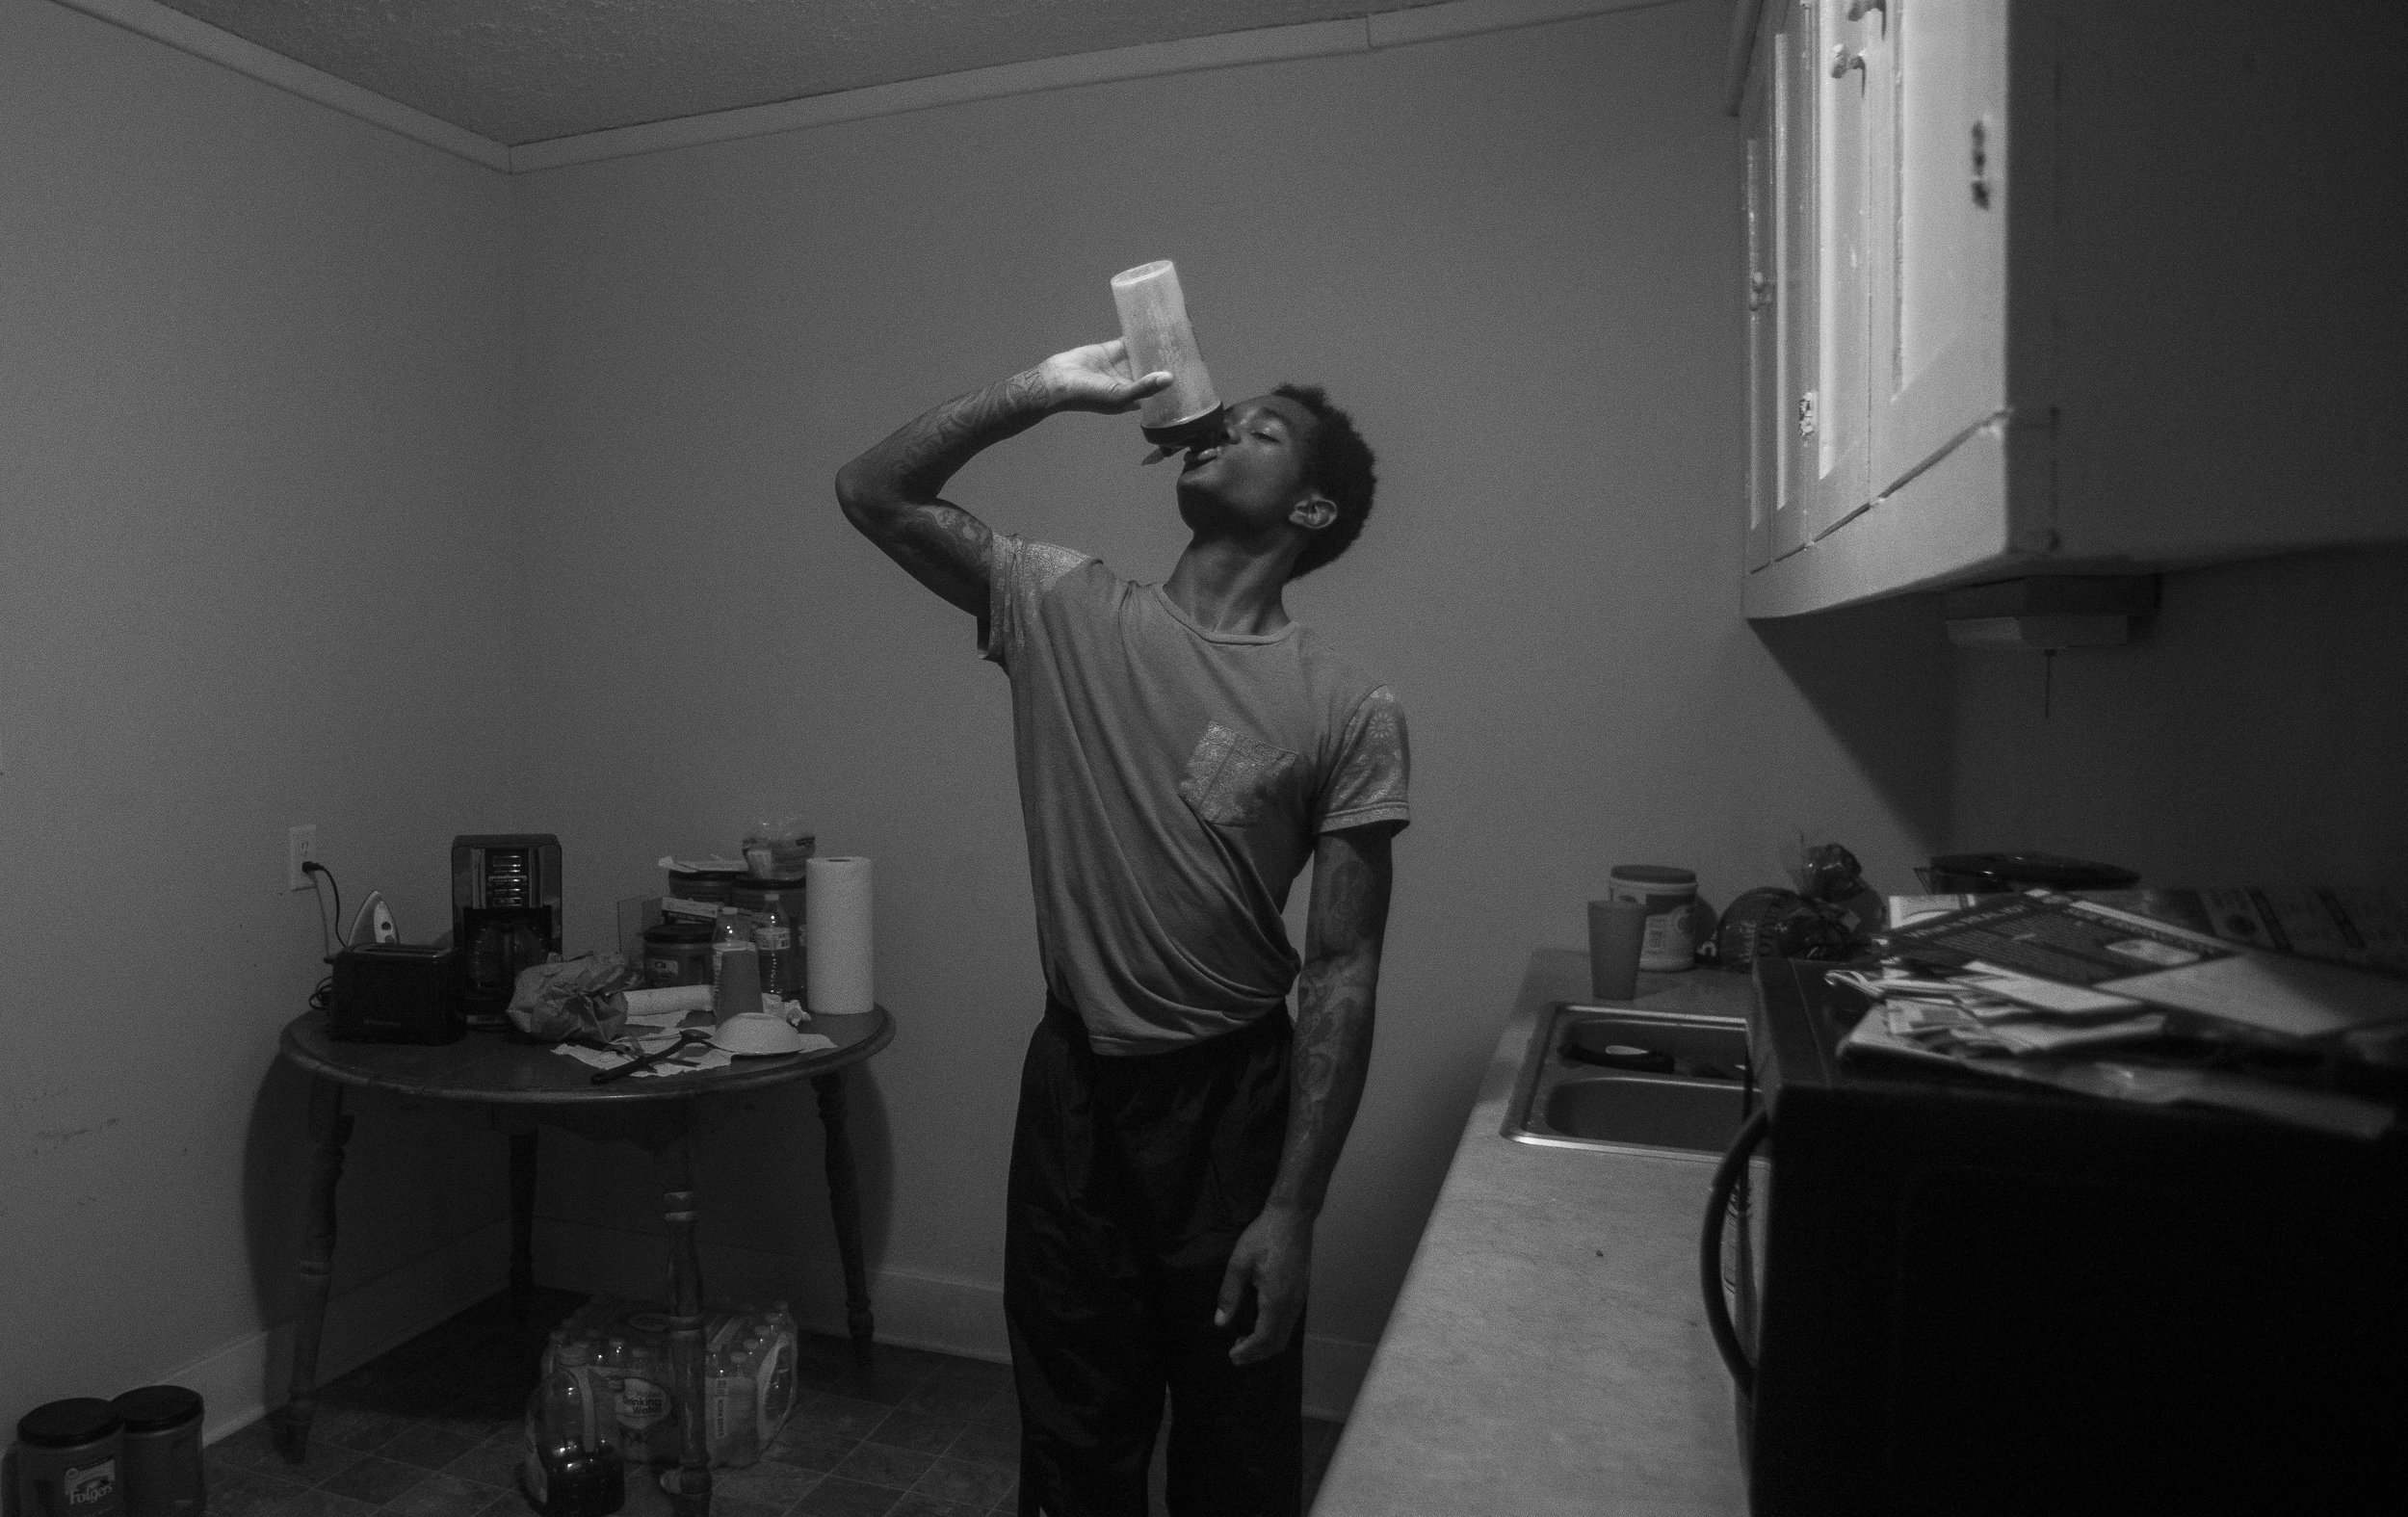 """Spikes drinks a pre-workout drink in the kitchen of his home before going on a 6-mile run. He relaxes after his morning workout by eating 2 cups of oatmeal, a protein drink and watching an episode of """"Gotham"""" or playing video games."""